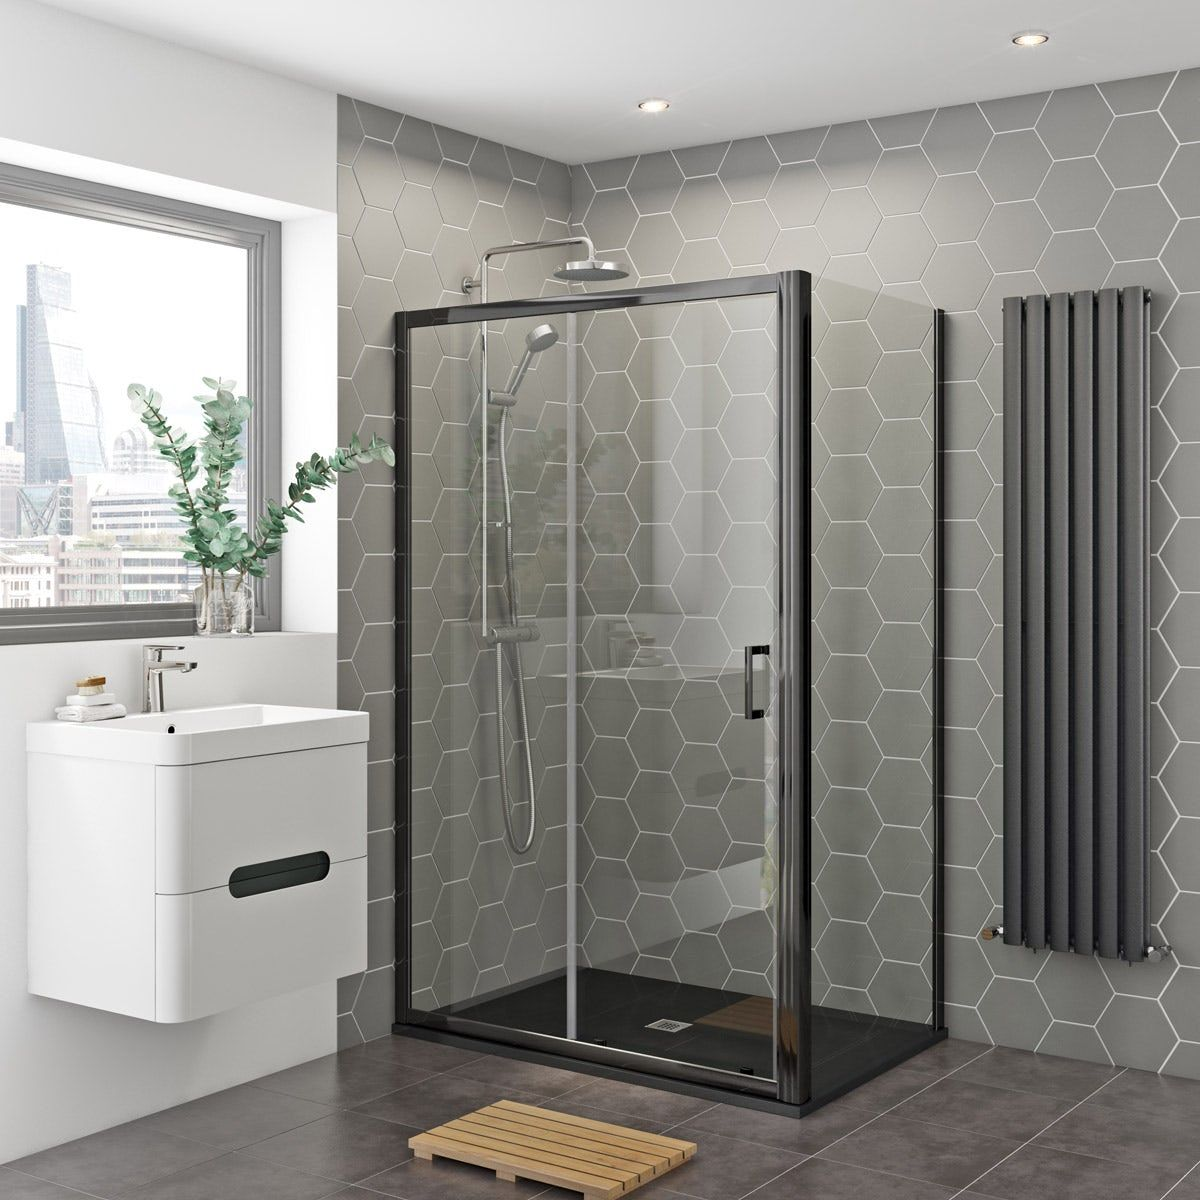 Mira Agile Shower Bundle With Mode Black Enclosure And Slate Effect Tray Rectangular Shower Enclosures Shower Enclosure Bathroom Interior